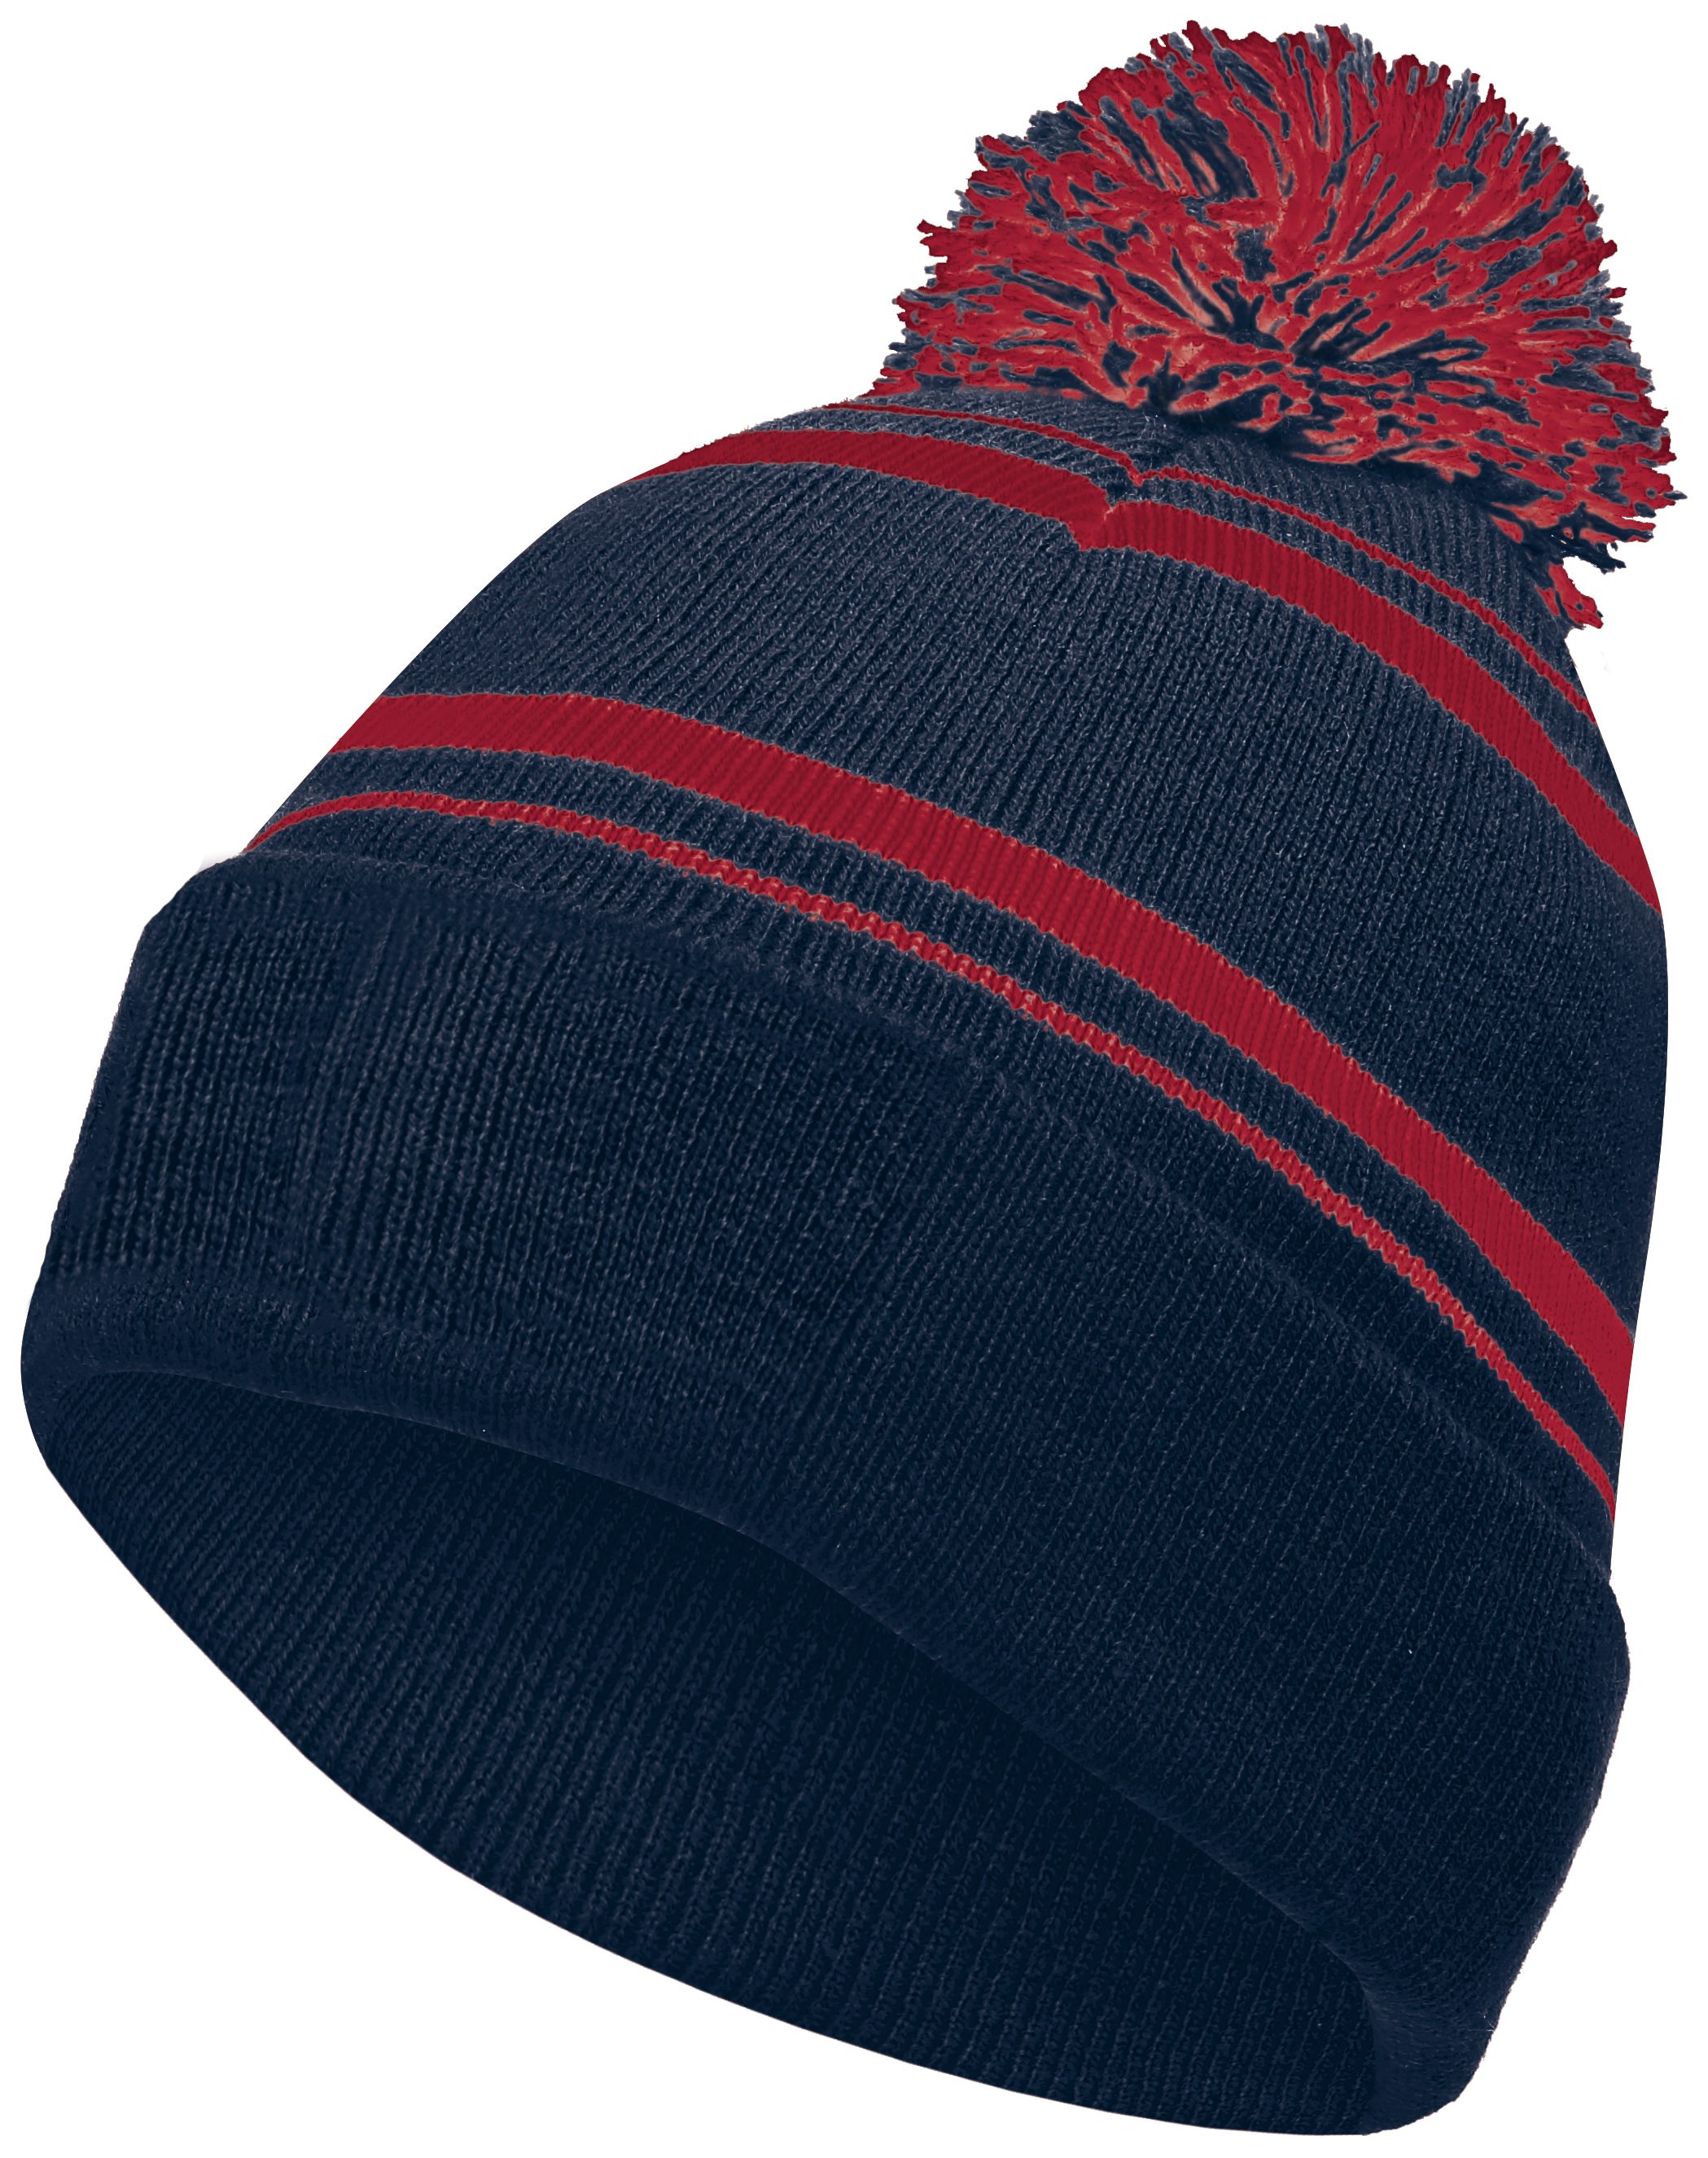 Homecoming Beanie - NAVY/SCARLET